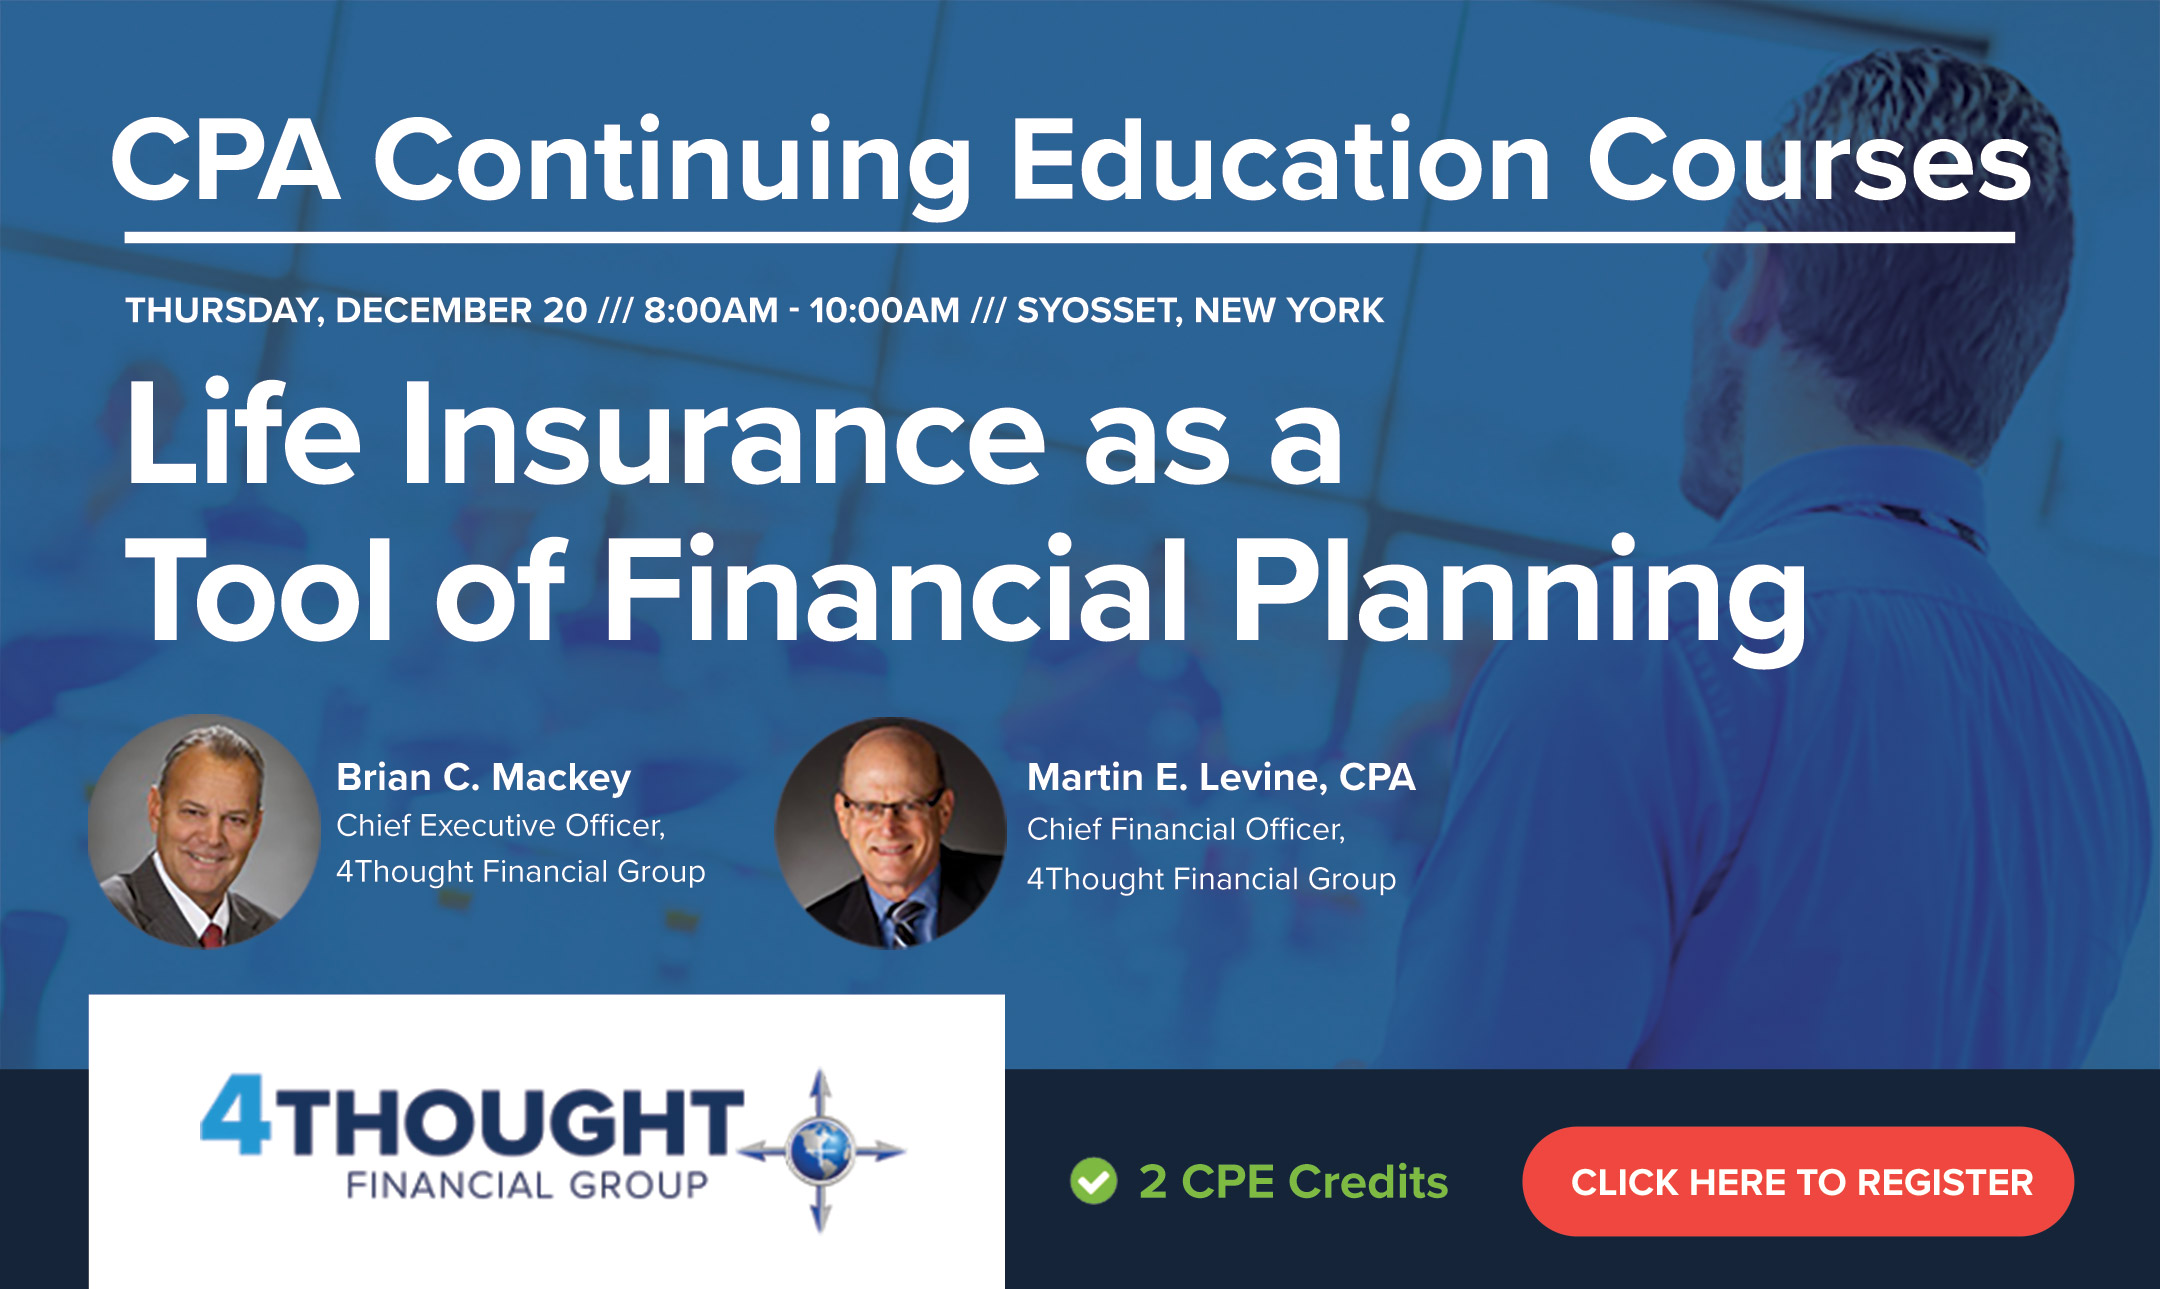 CPA Continuing Education Course: Life Insurance as a Tool of Financial Planning